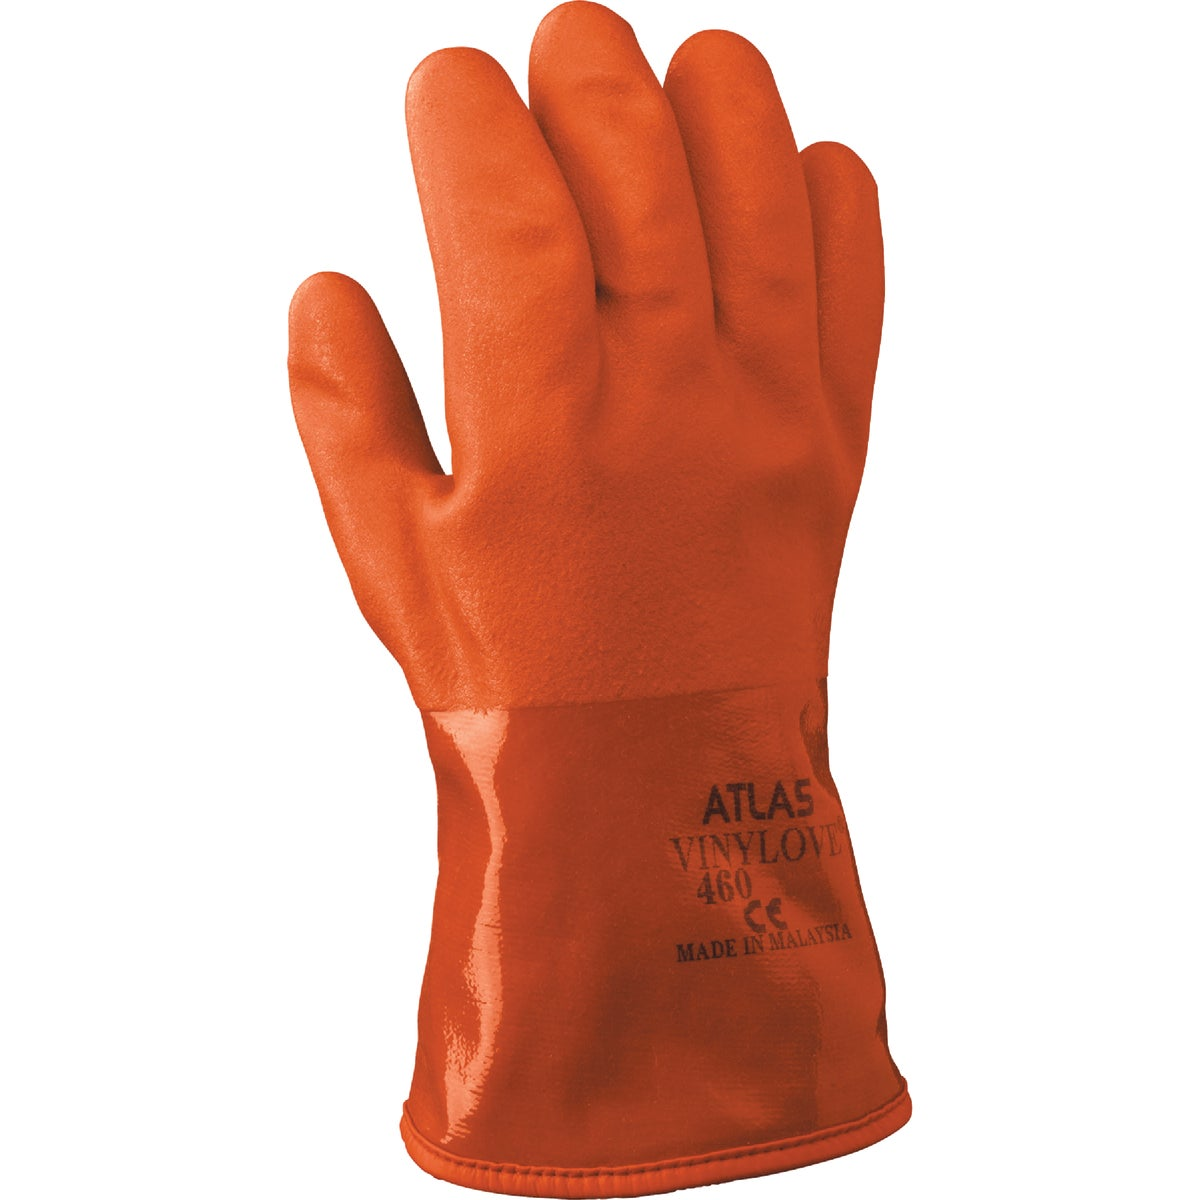 XL SNOW BLOWER GLOVE - 460XL-10.RT by Showa Best Glove